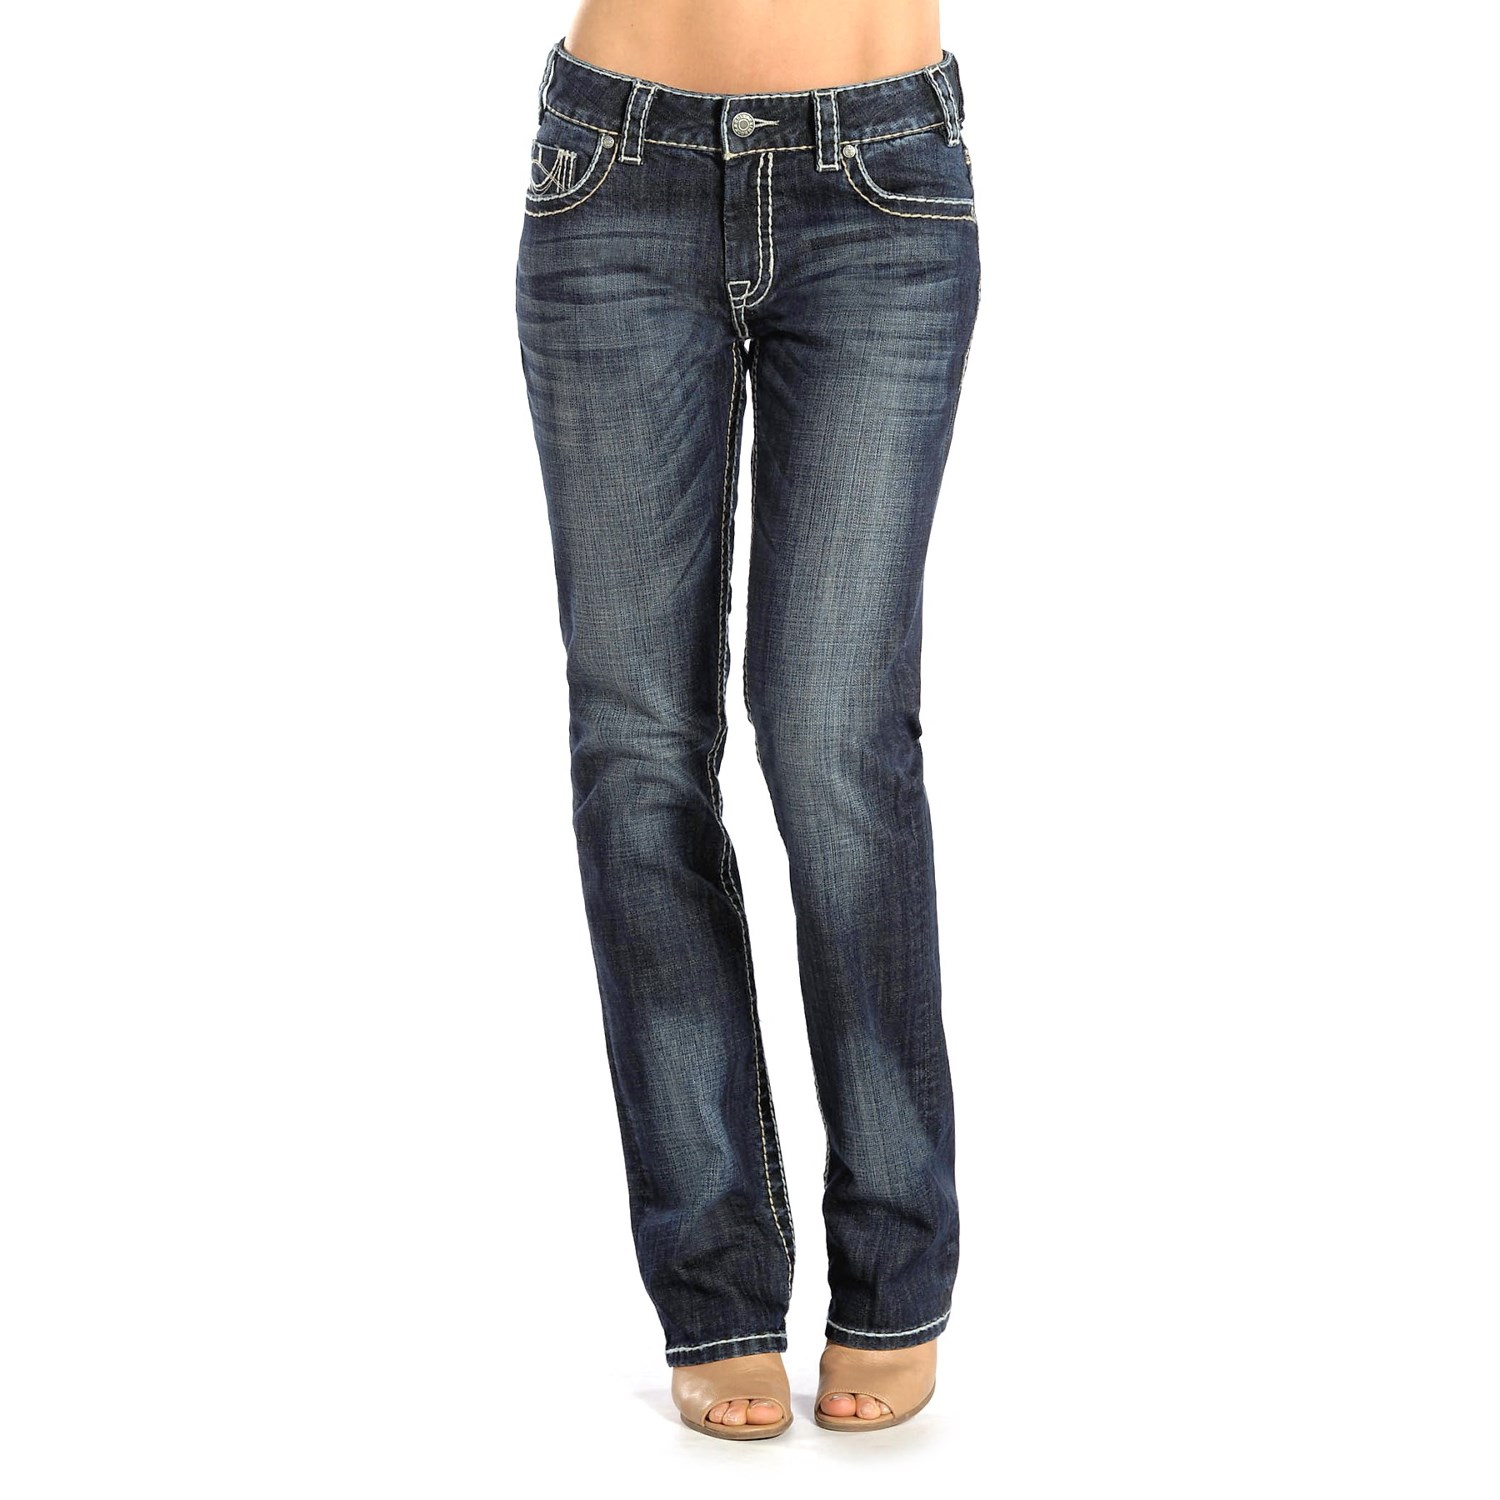 boyfriend jeans for women - photo #24